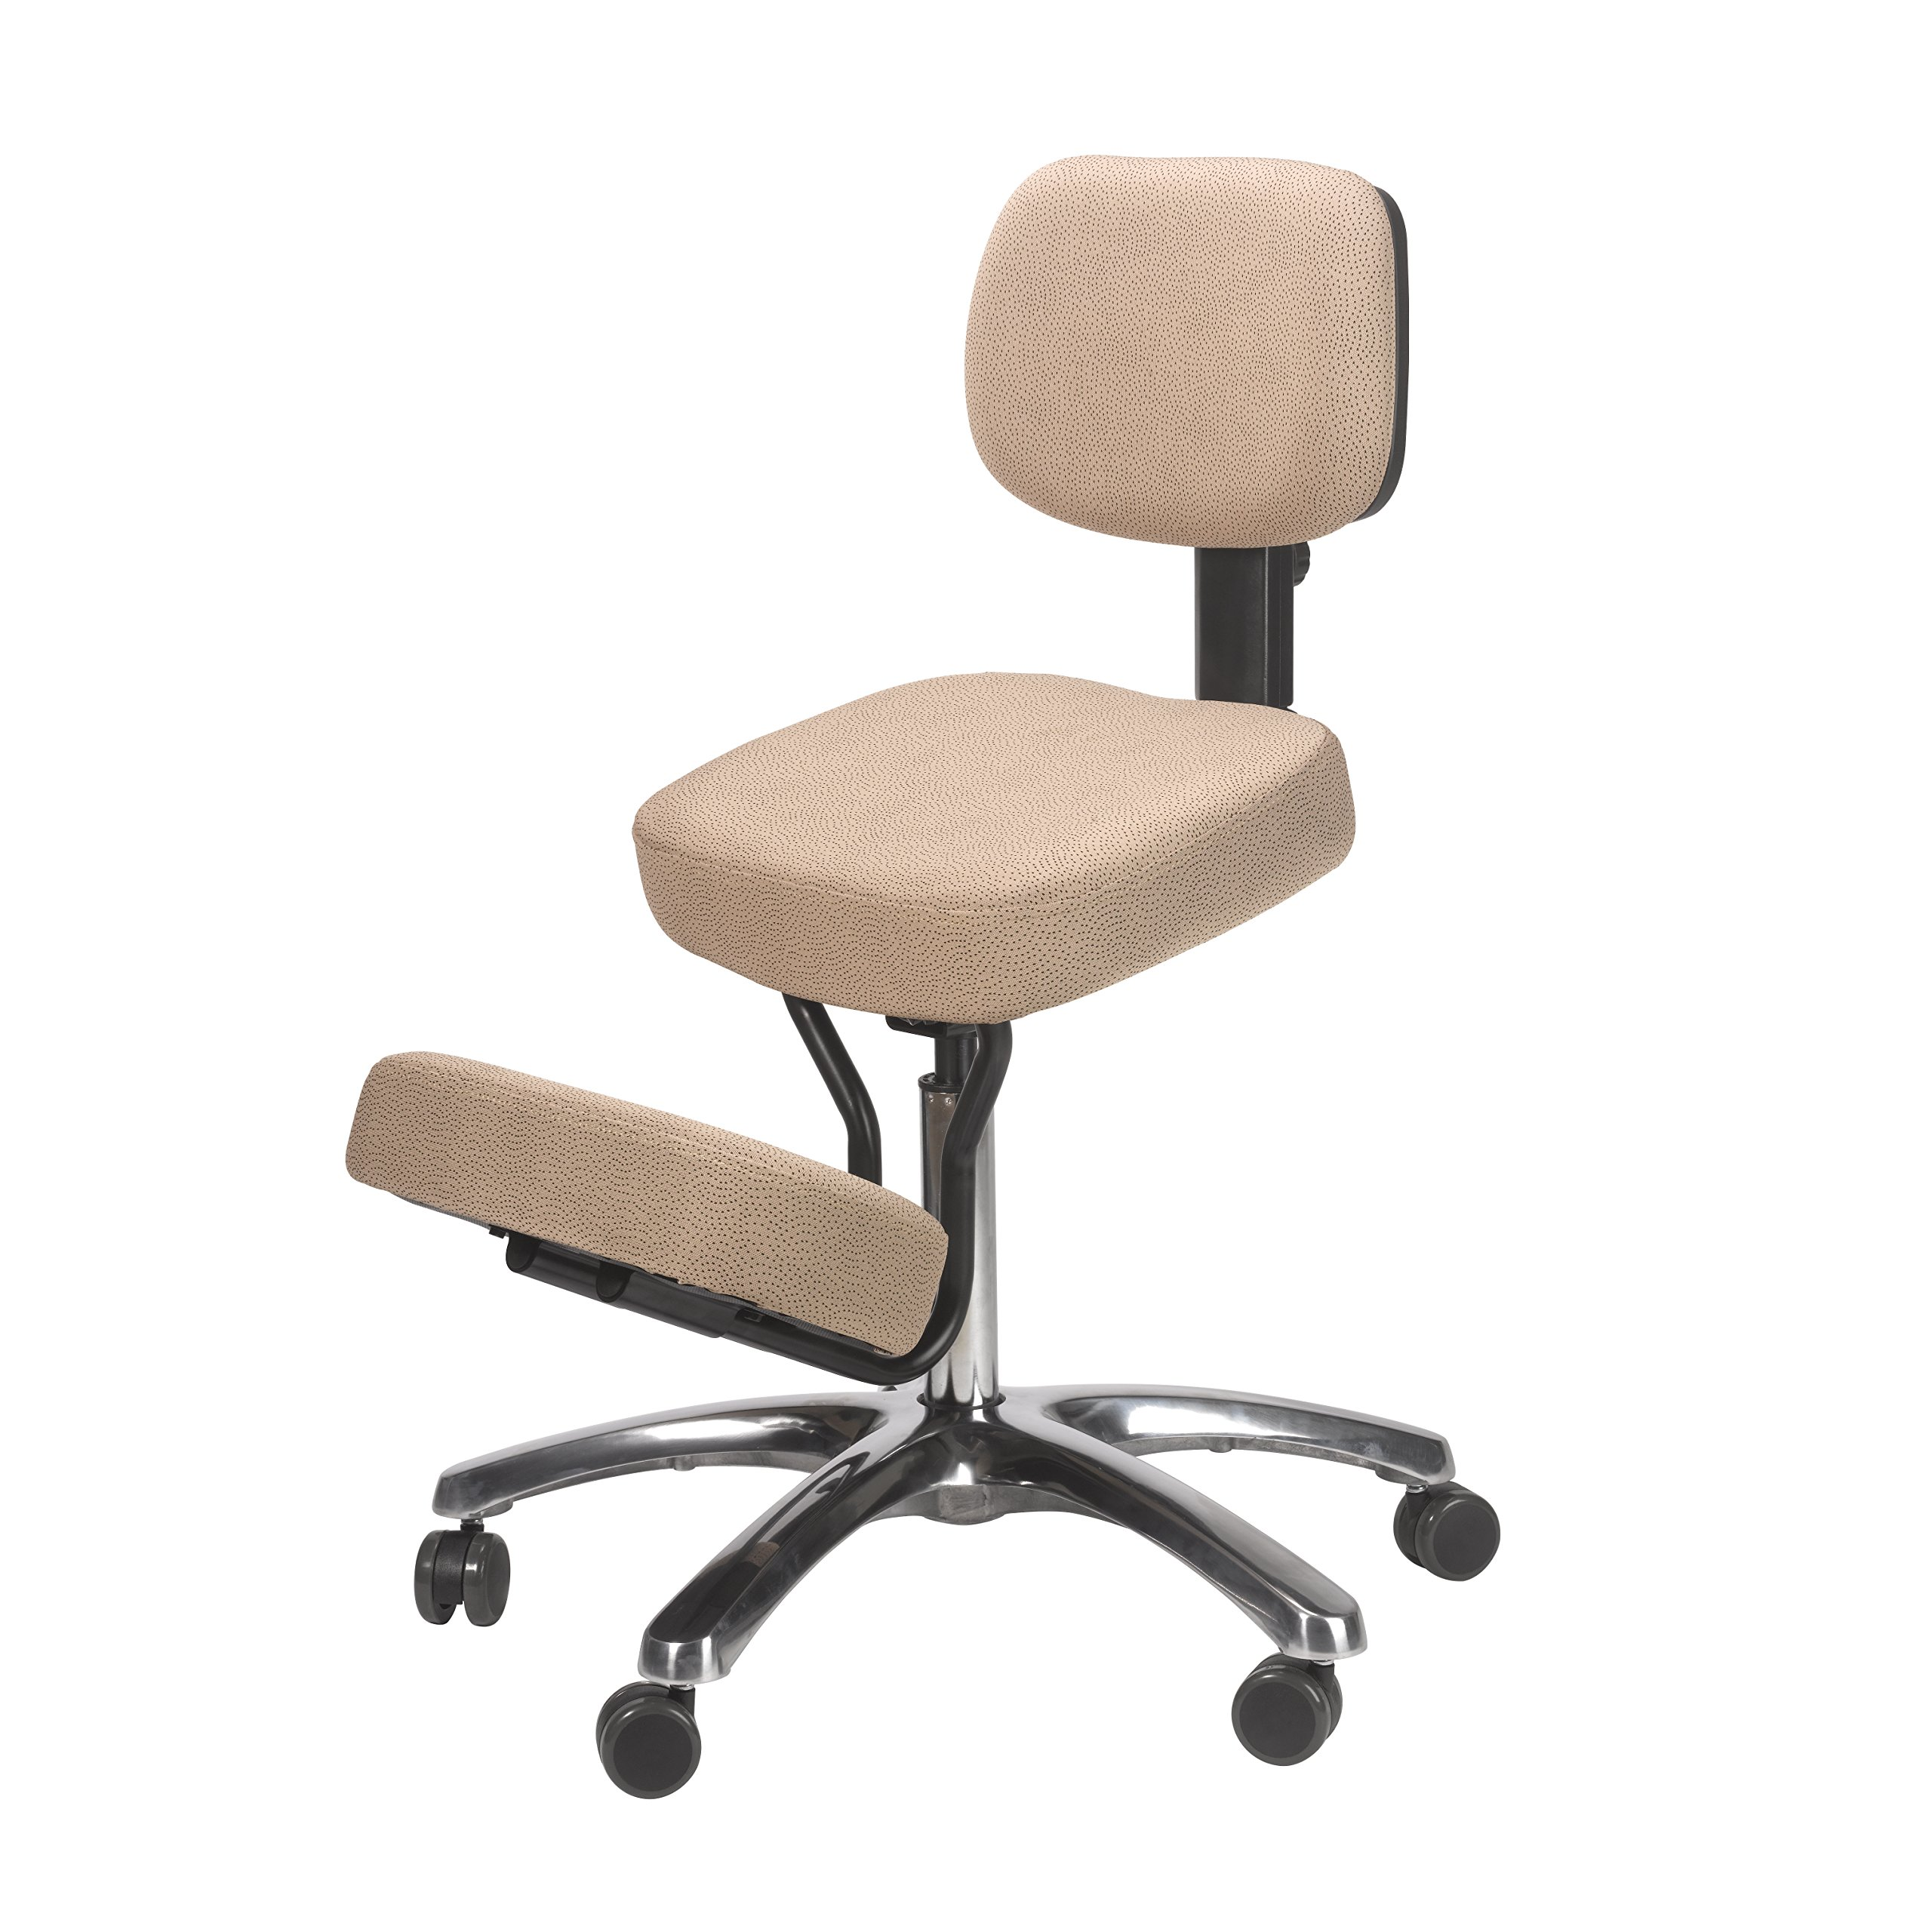 Jazzy Kneeling chair BetterPosture with Back - Beige by Jazzy Kneeling chair